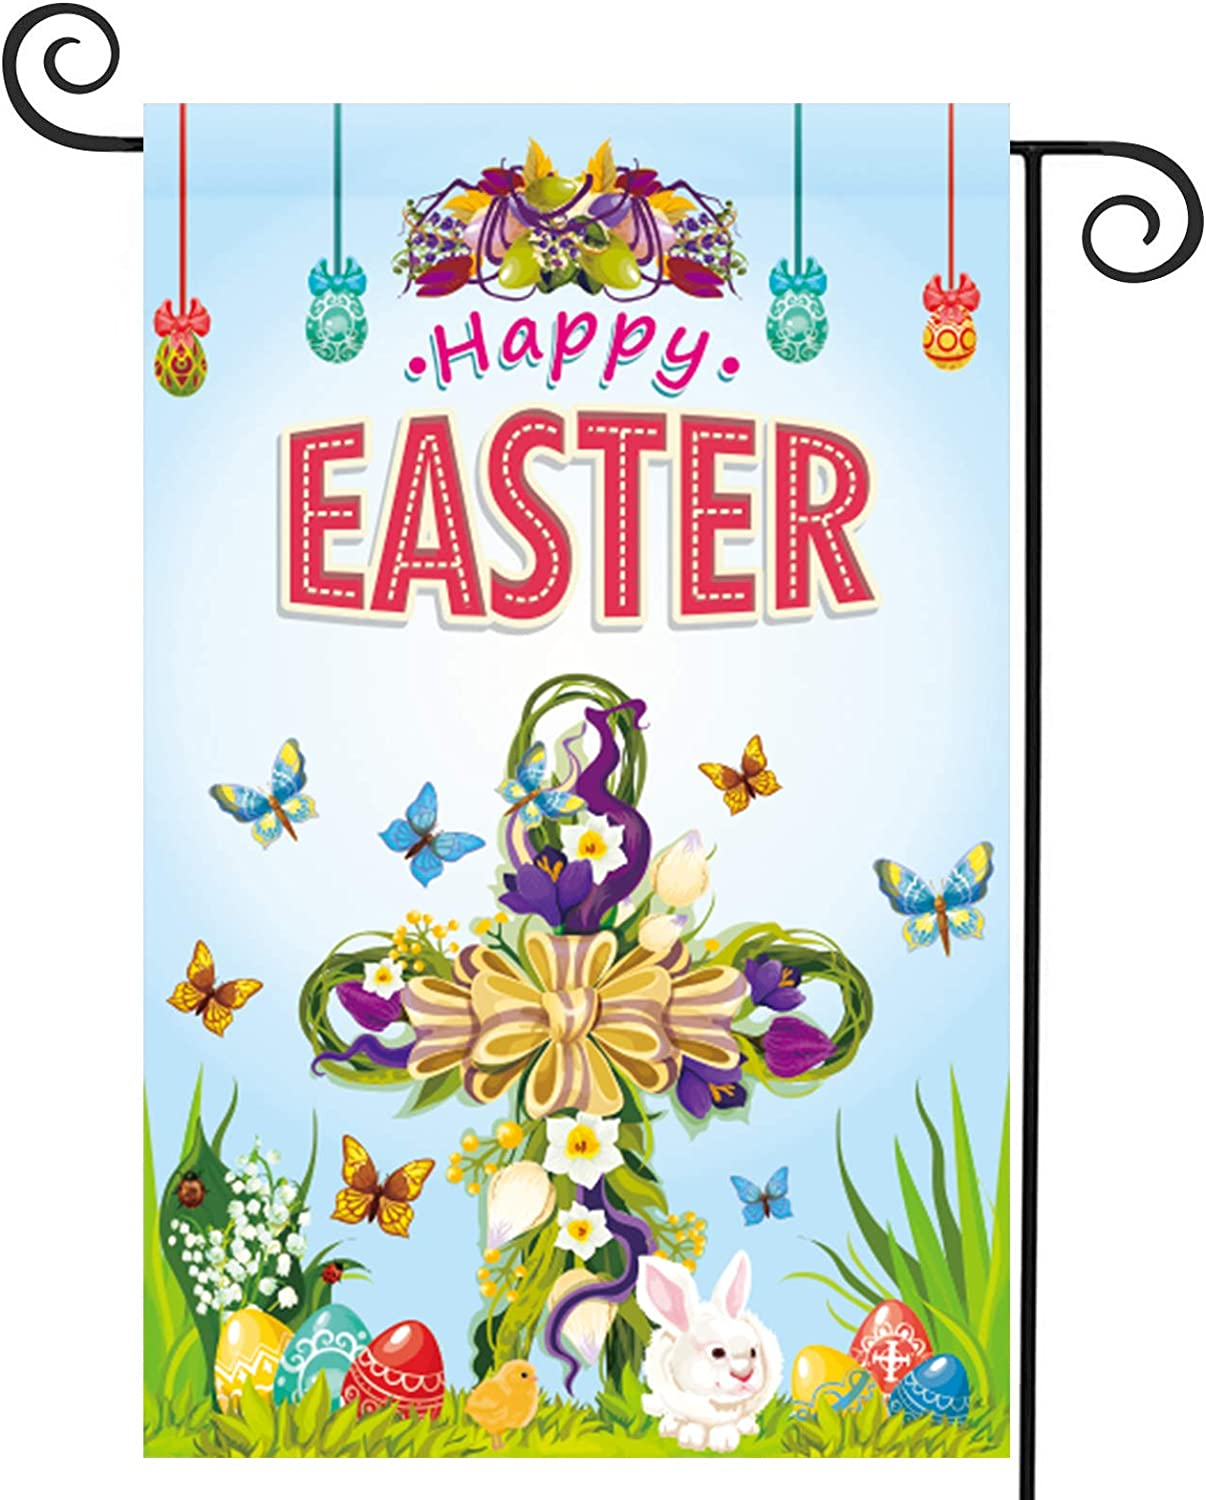 beitony Happy Easter Garden Flag 12 x 18 Inches Happy Rabbit Vertical Double-Sided Polyester Cloth Outdoor Decor Perfect Decoration for Easter Party Home Farm & Good Gift for Kid (hh-02-hyq)